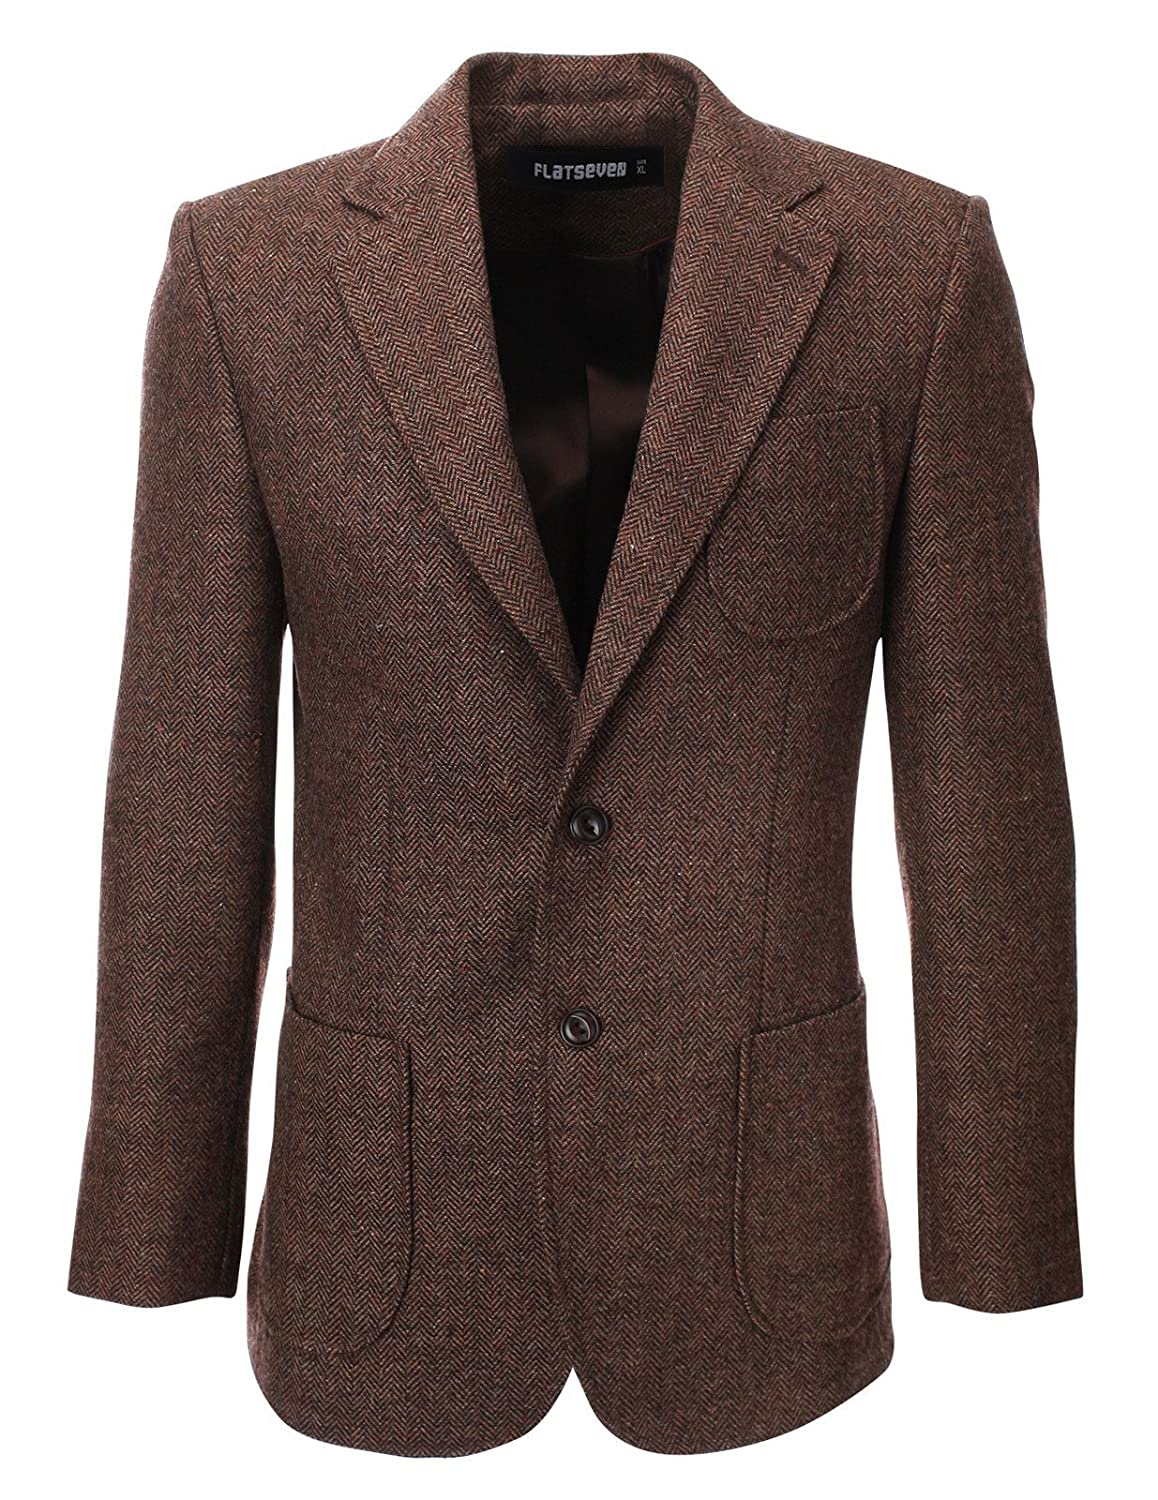 Men's Vintage Style Coats and Jackets FLATSEVEN Mens Herringbone Wool Blazer Jacket with Elbow Patches $149.99 AT vintagedancer.com